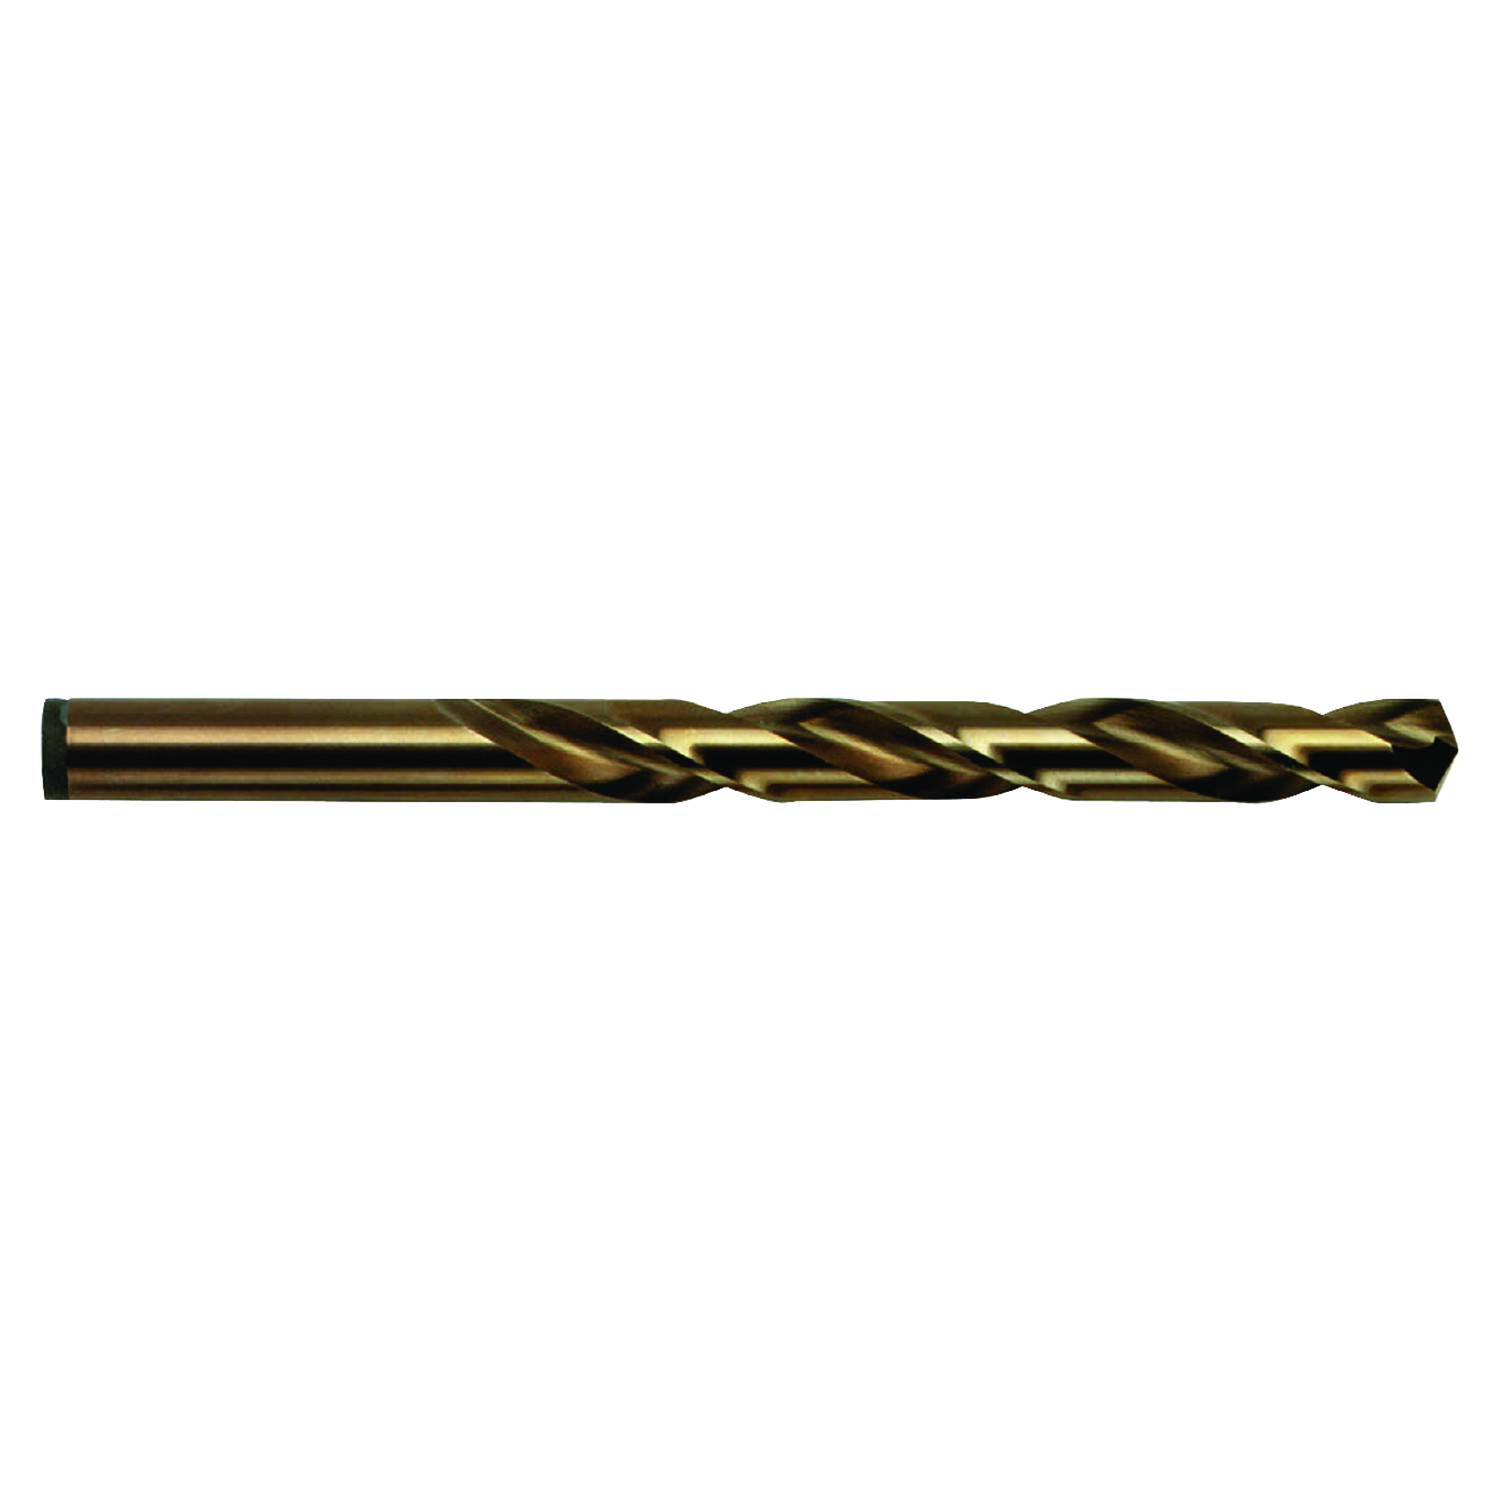 Irwin  Cobalt  31/64 in. Dia. x 5-7/8 in. L High Speed Steel  Drill Bit  Straight Shank  1 pc.